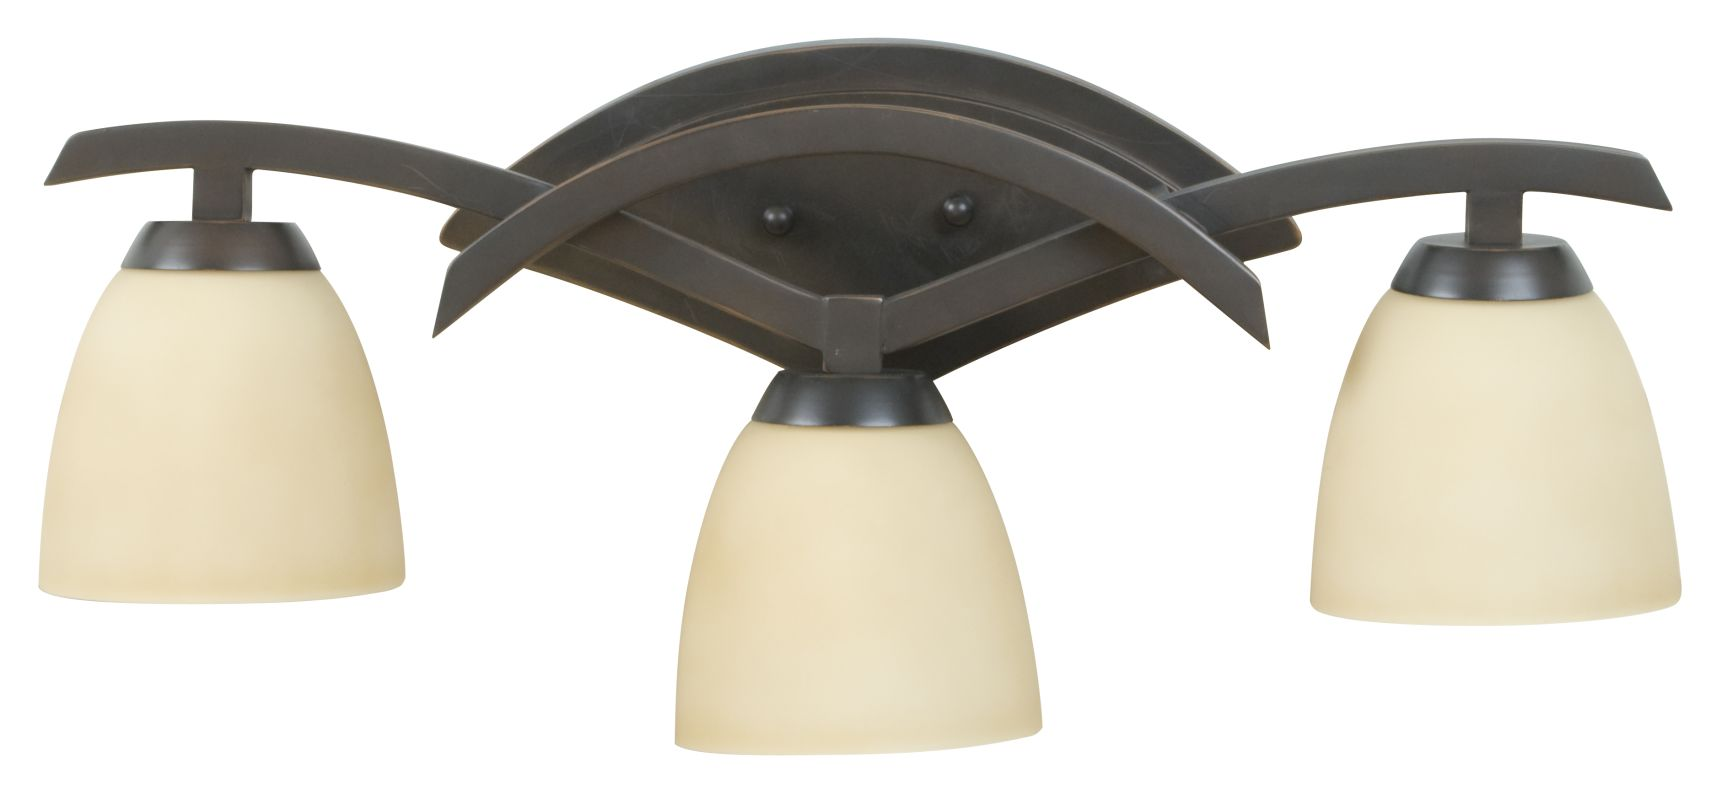 Craftmade 14024 Viewpoint 3 Light Bathroom Vanity Light - 24 Inches Sale $189.00 ITEM: bci1726228 ID#:14024OBG3 UPC: 647881105167 :